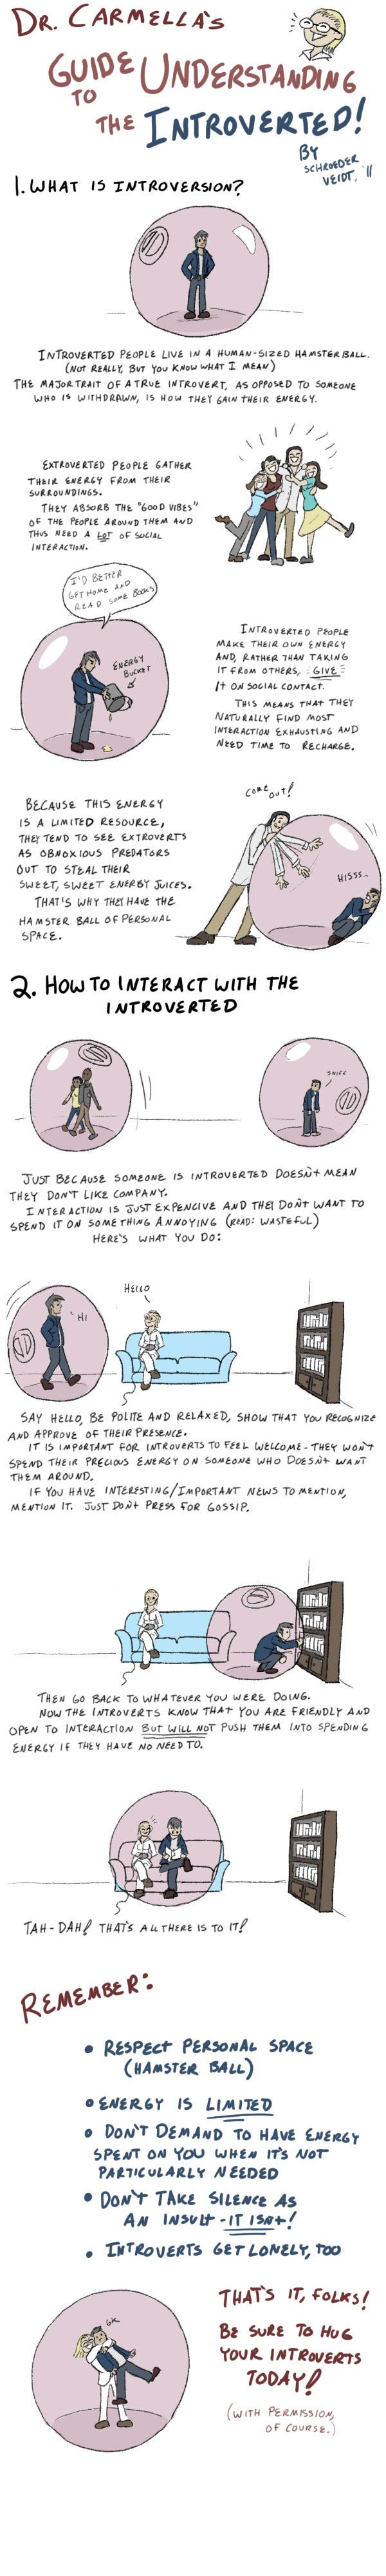 how to understand and get along with an introvert... your clientele (and friends) base will include some introverts for sure.